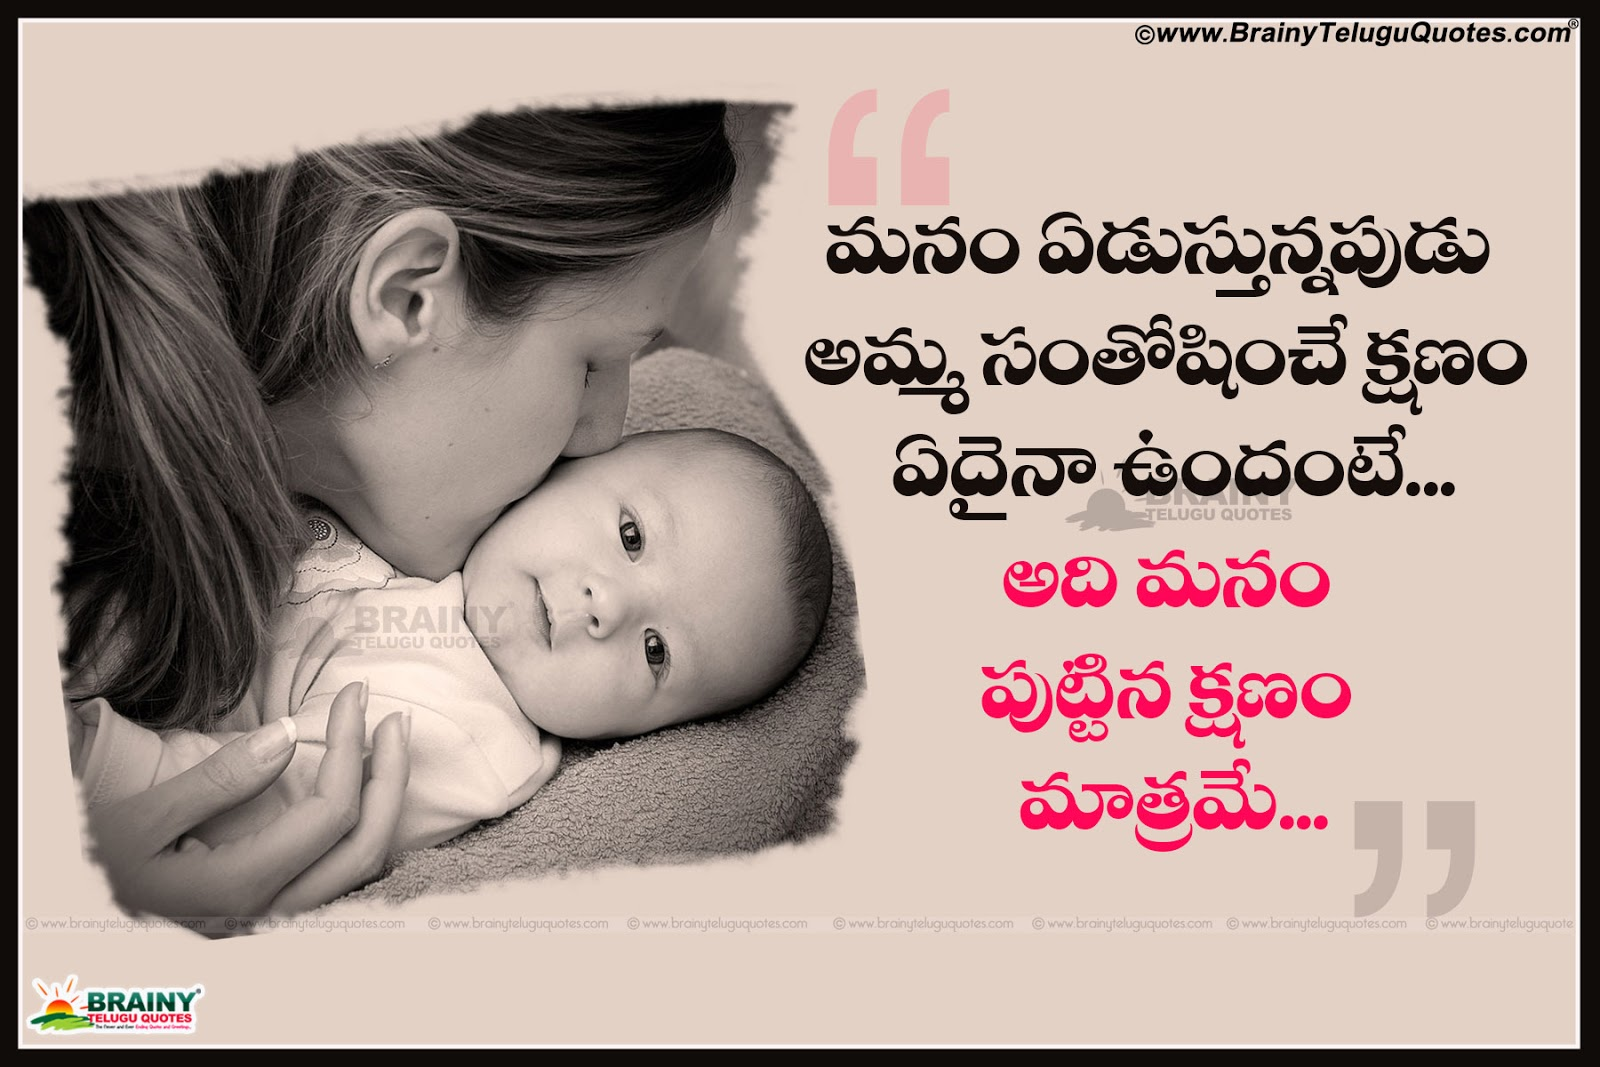 Awesome Telugu Mother (Amma) Quotes With Images